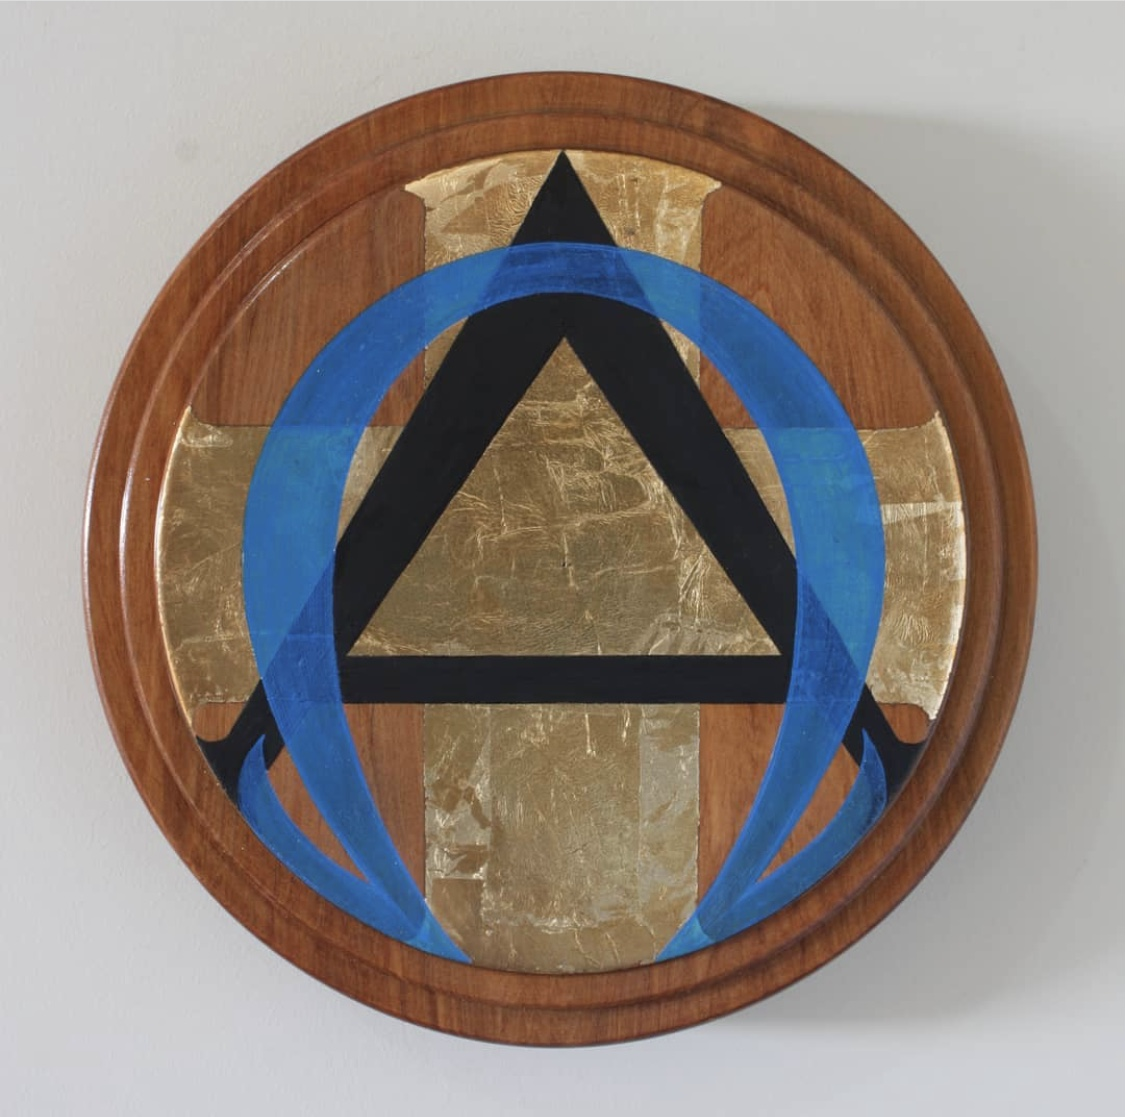 'AO#1' Duane Moyle, Oil and gold leaf on timber serve ware $390 (210mm diameter)